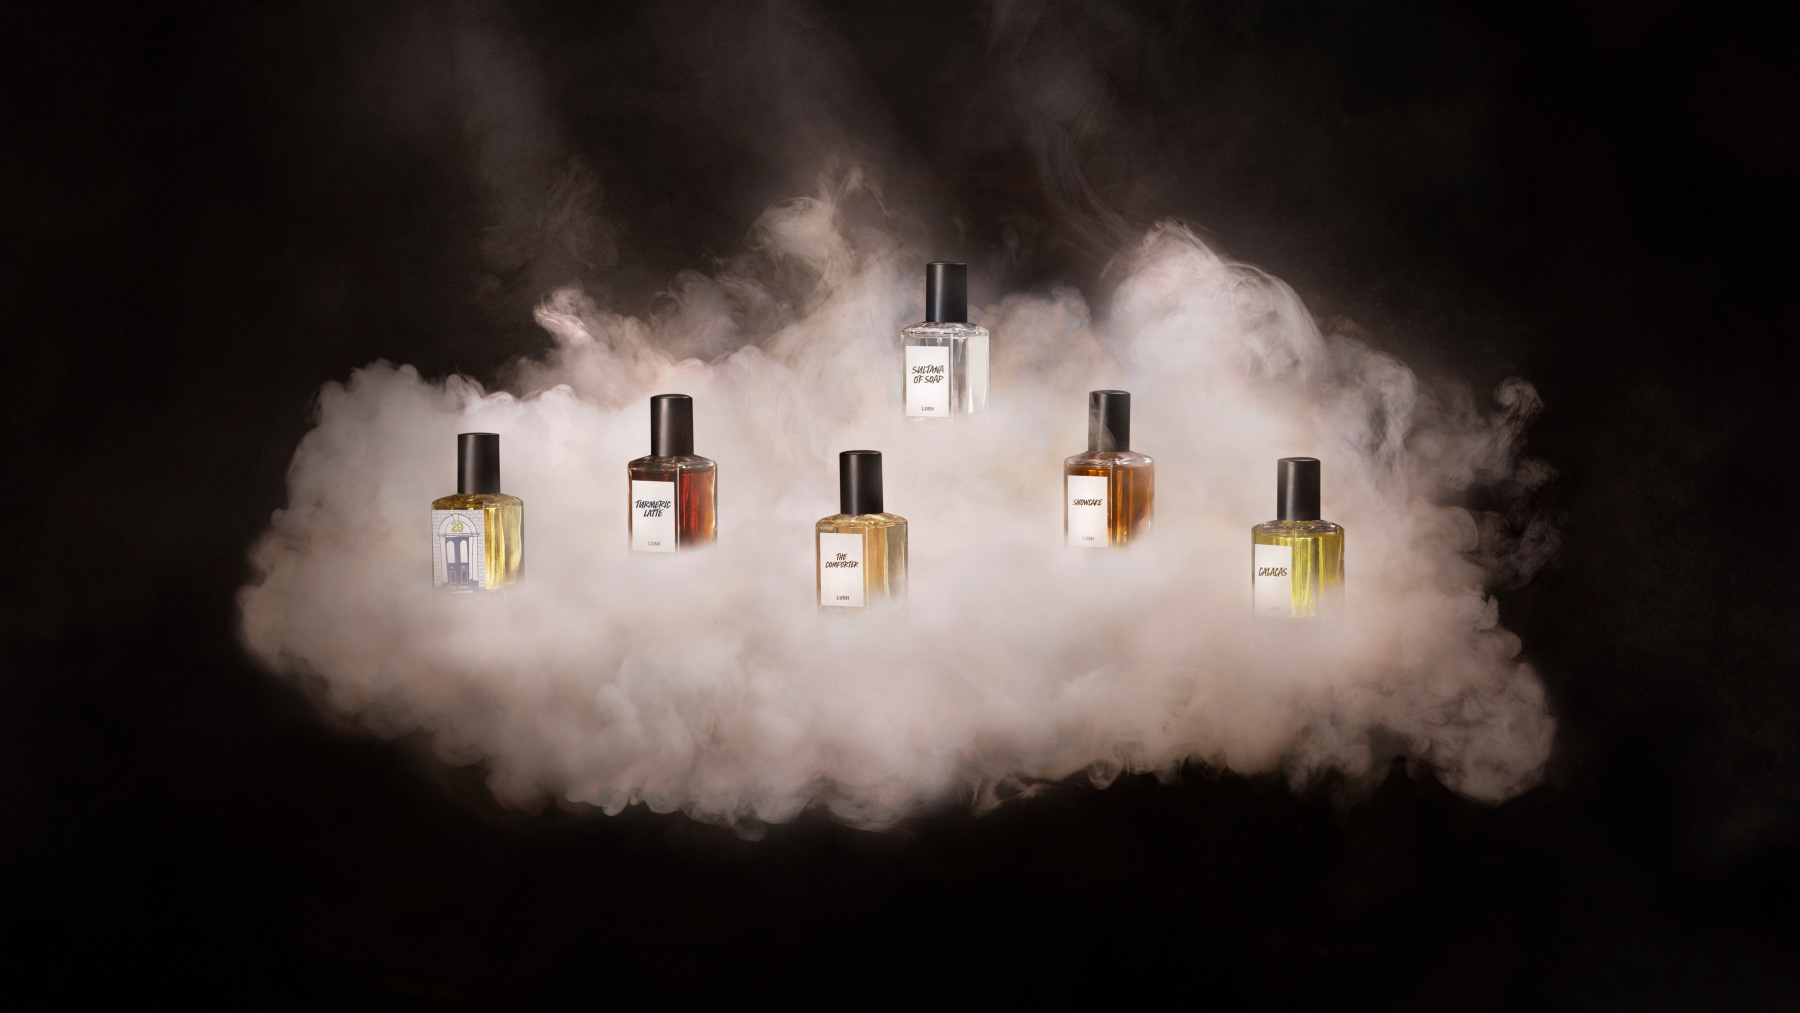 community perfumes in a cloud of smoke on black background